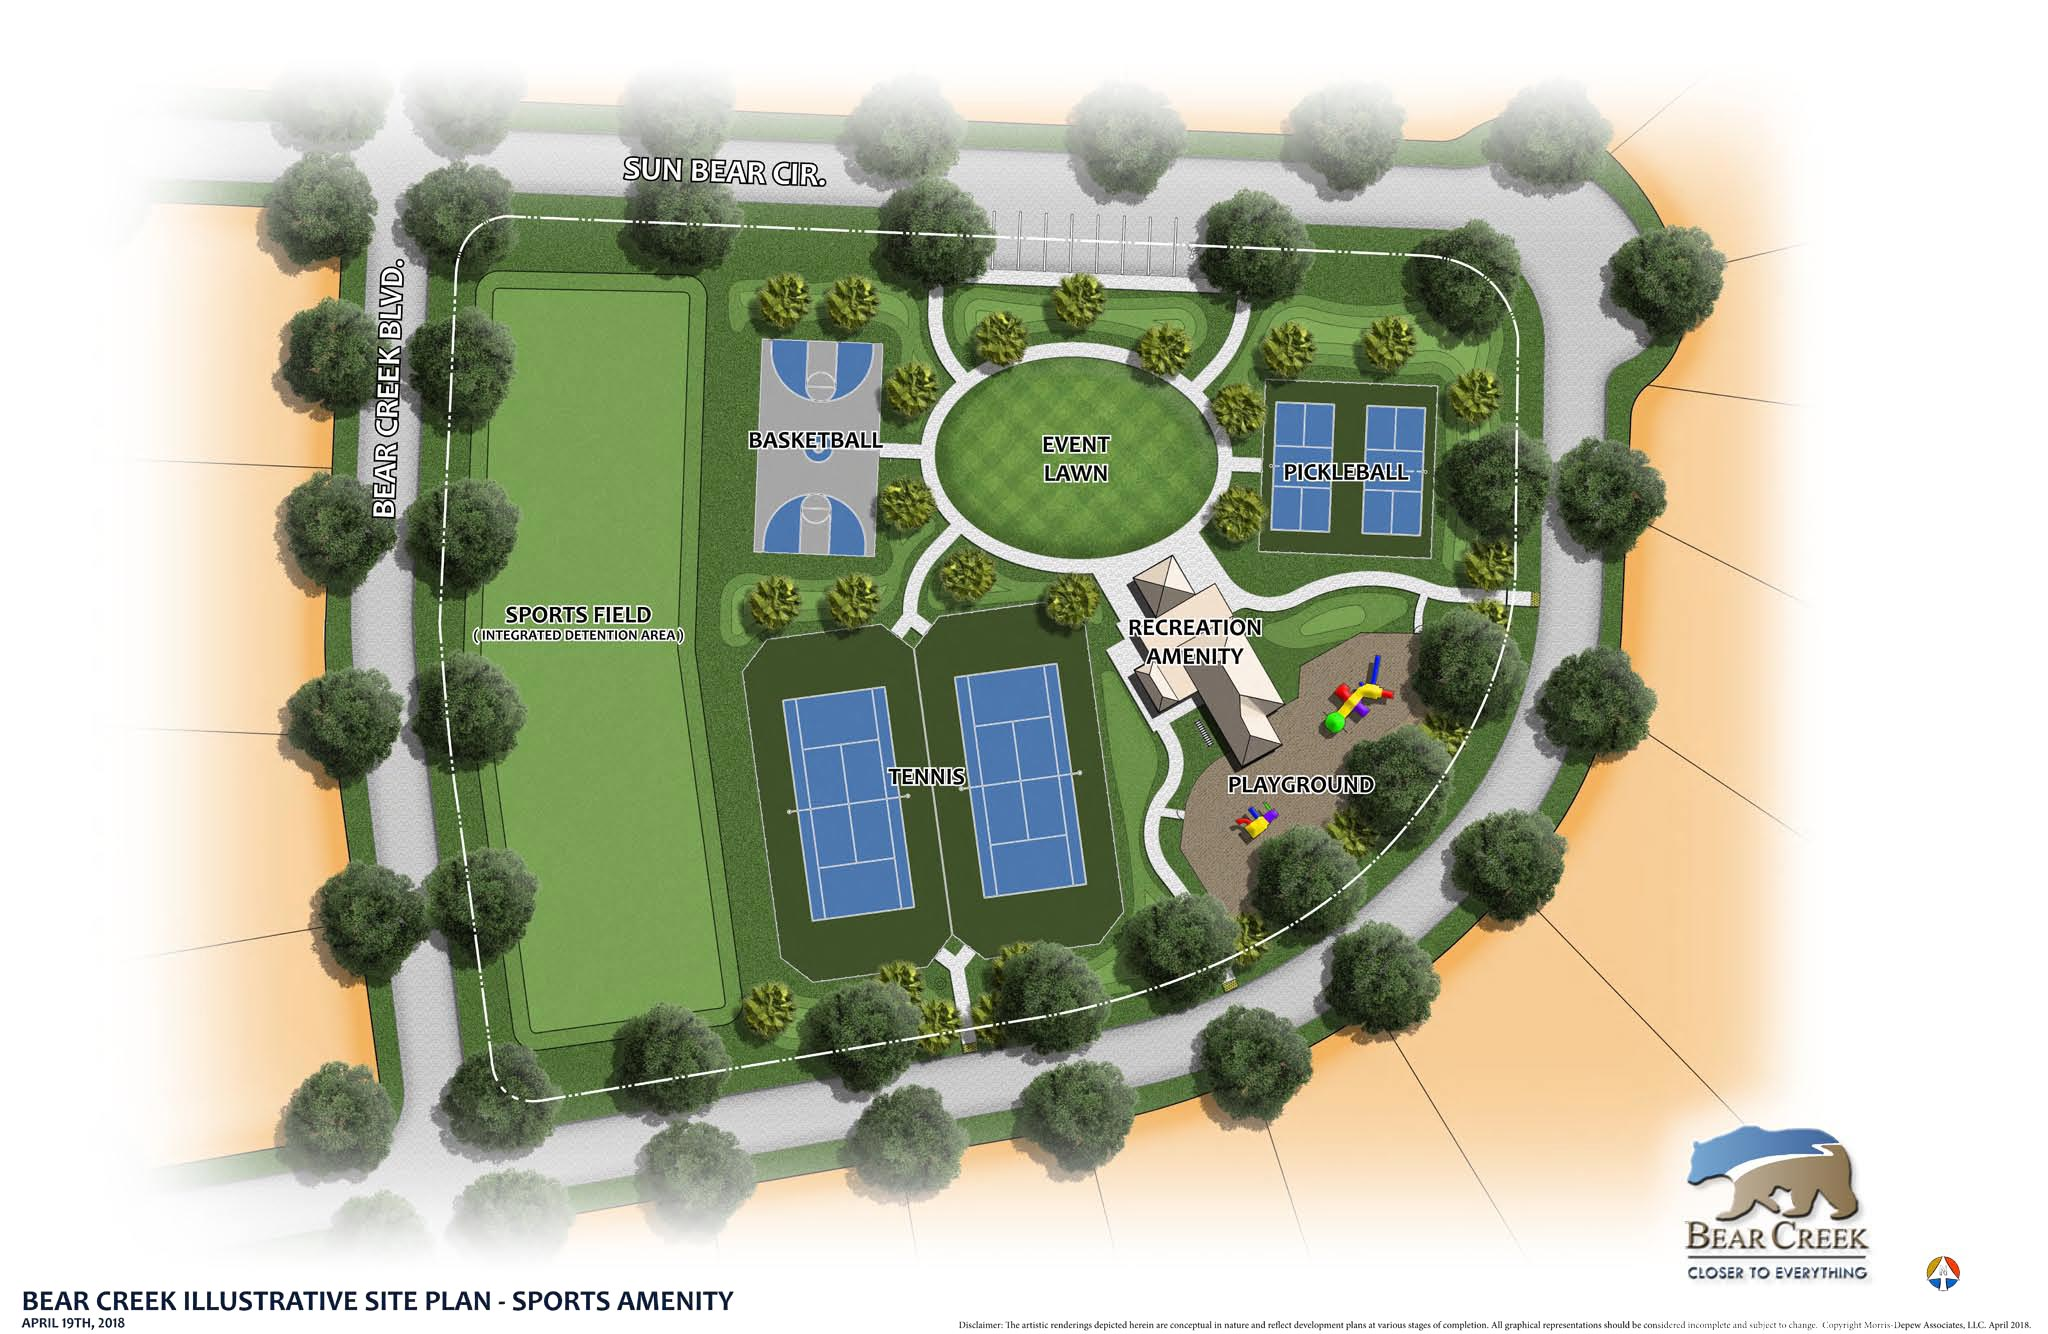 Photo of the Bear Creek Site Plan, showing sports amenities